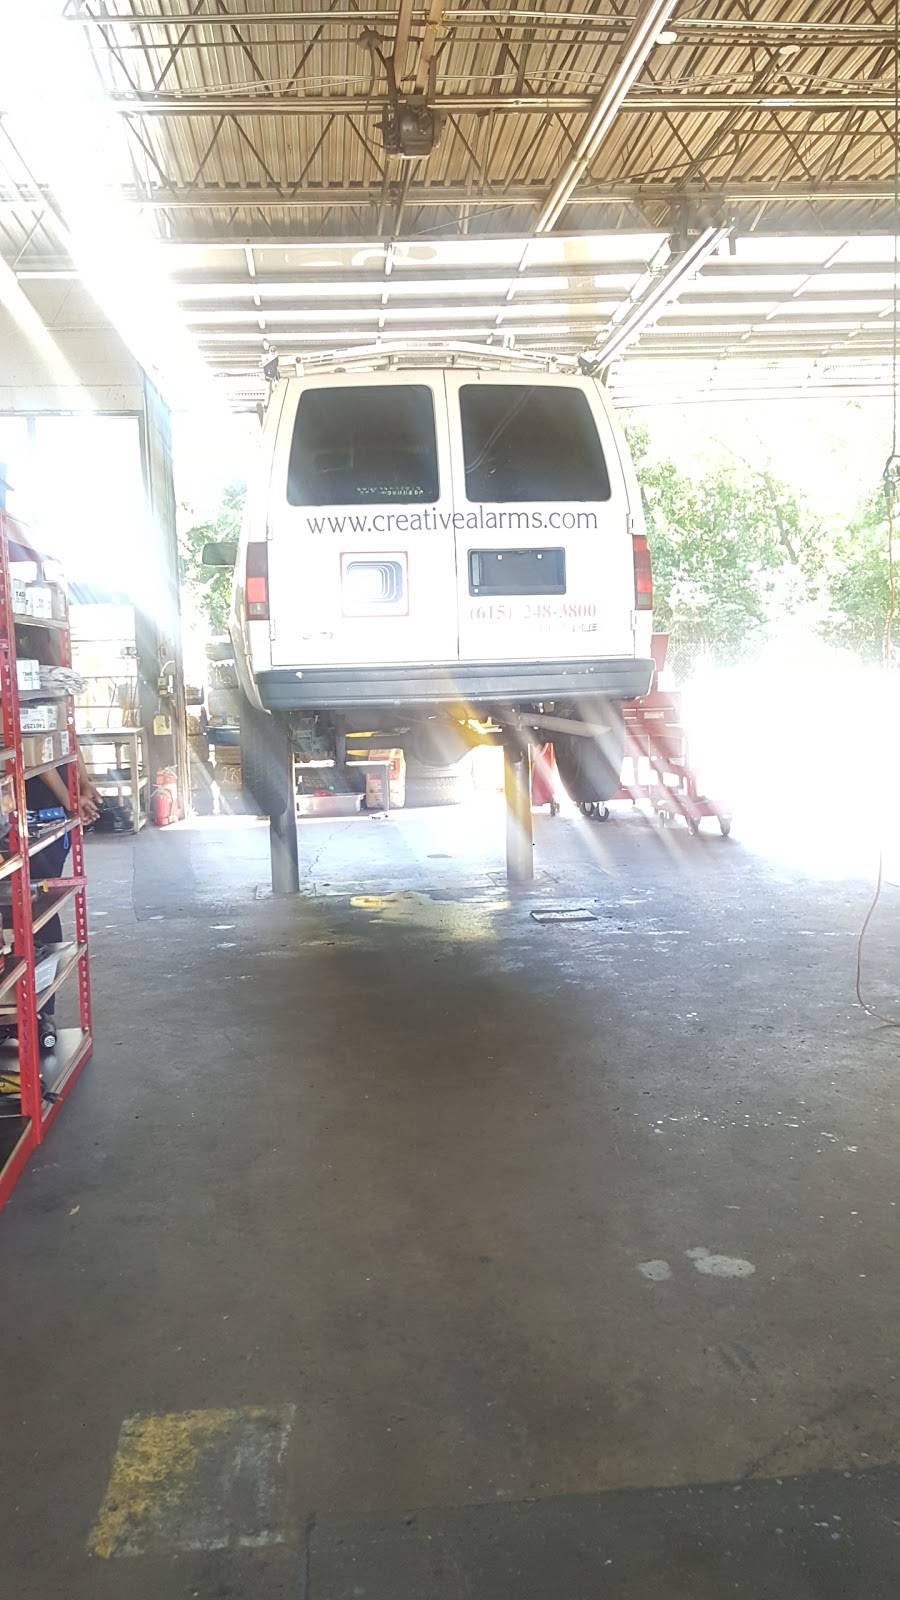 Best deal auto sales and service inc - car repair    Photo 4 of 6   Address: 811 Gallatin Pike S, Madison, TN 37115, USA   Phone: (615) 738-6049